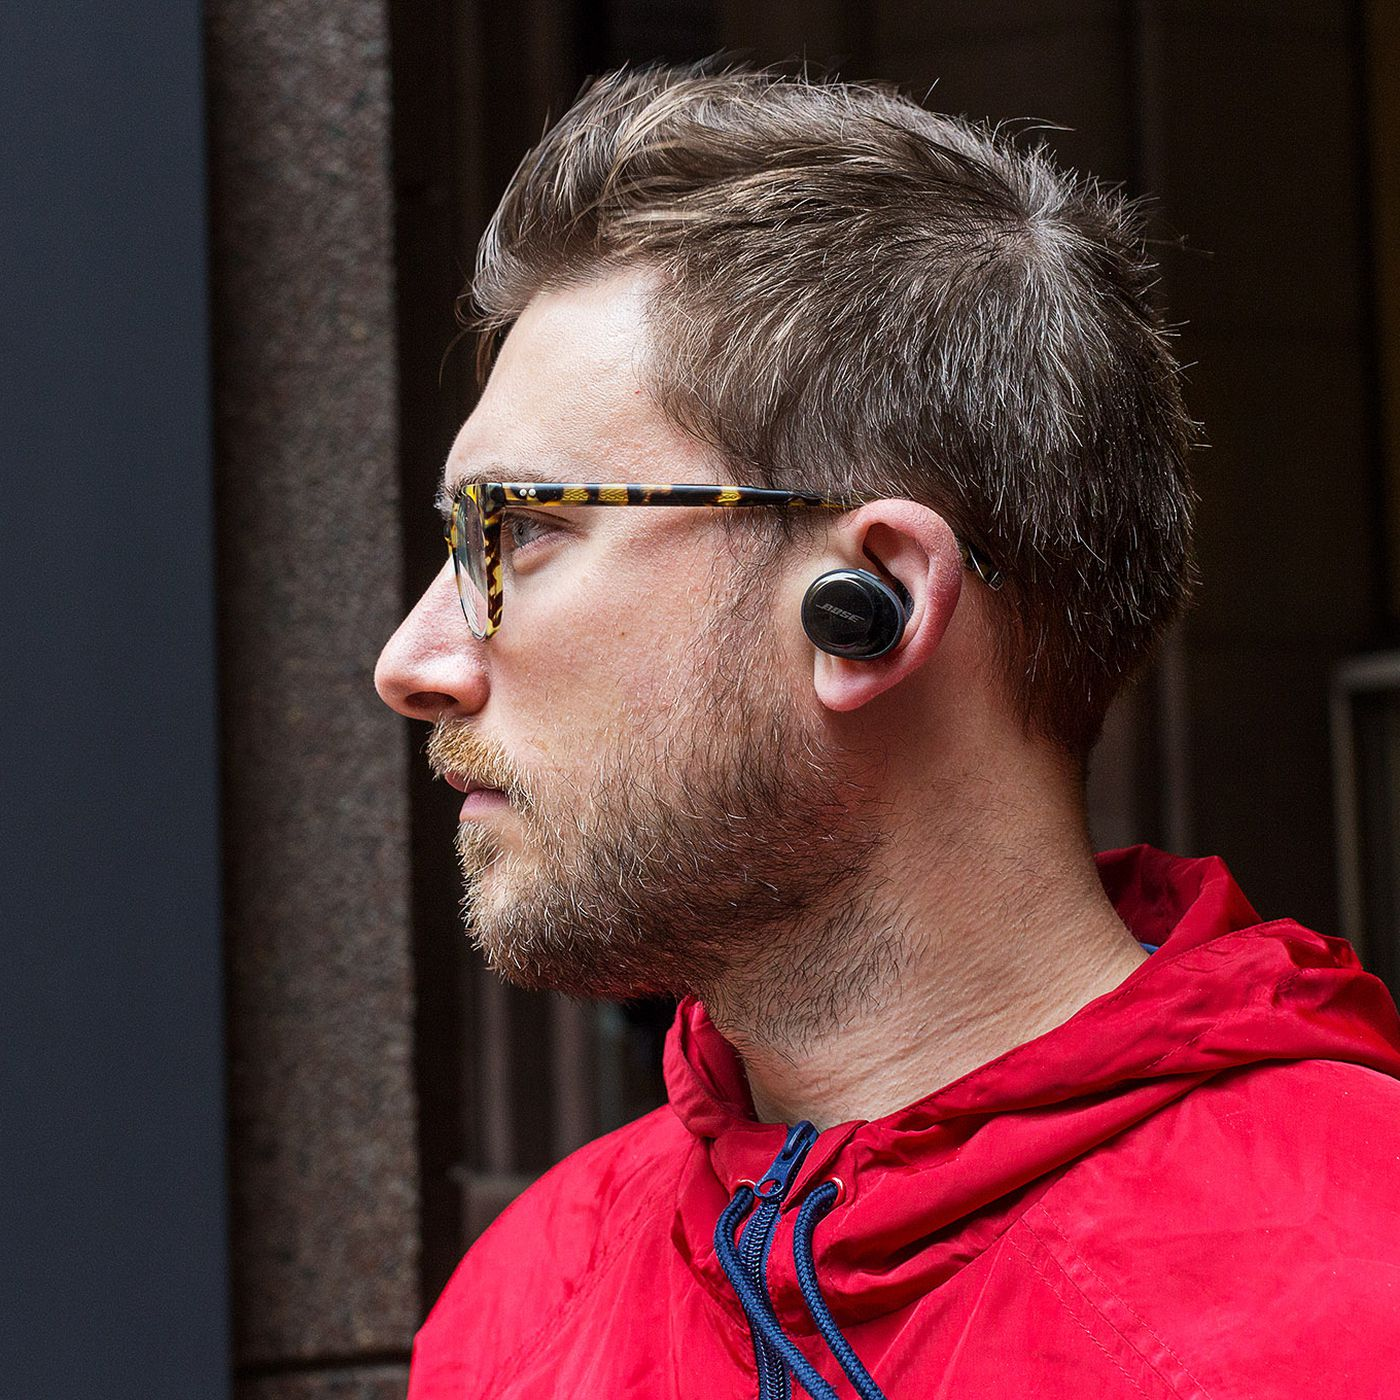 Bose Soundsport Free Review Truly Wireless Earbuds Never Sounded So Good The Verge